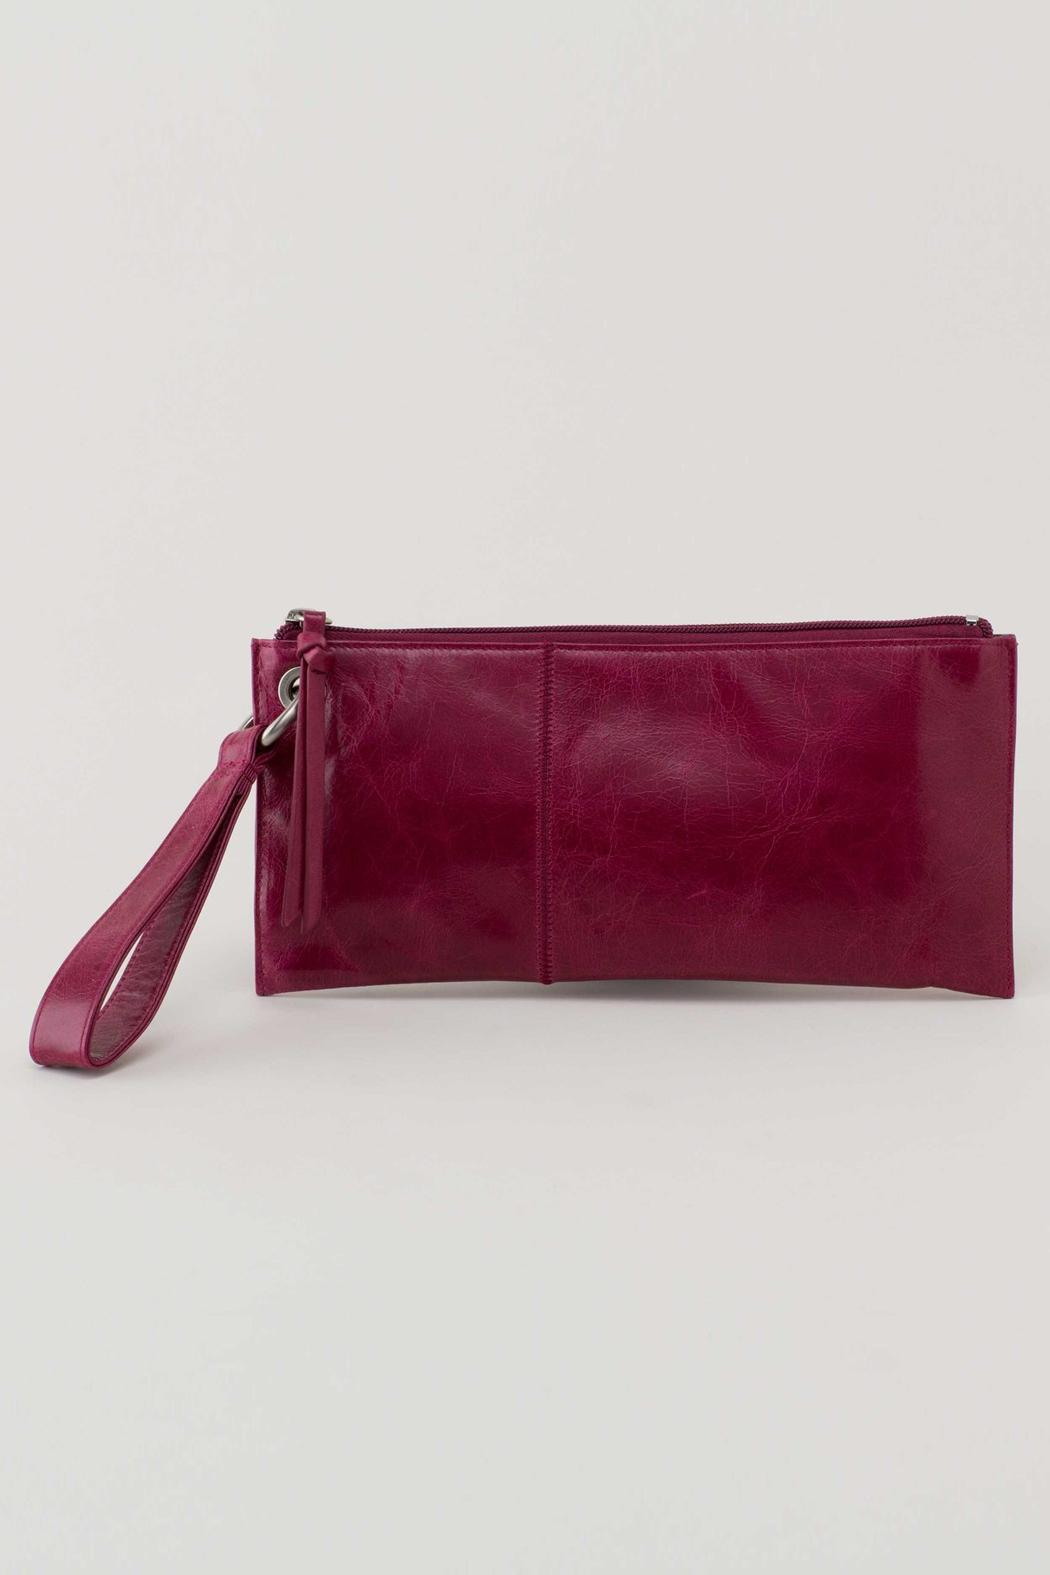 VIDA Leather Statement Clutch - AJP by VIDA 1GRheUfDc